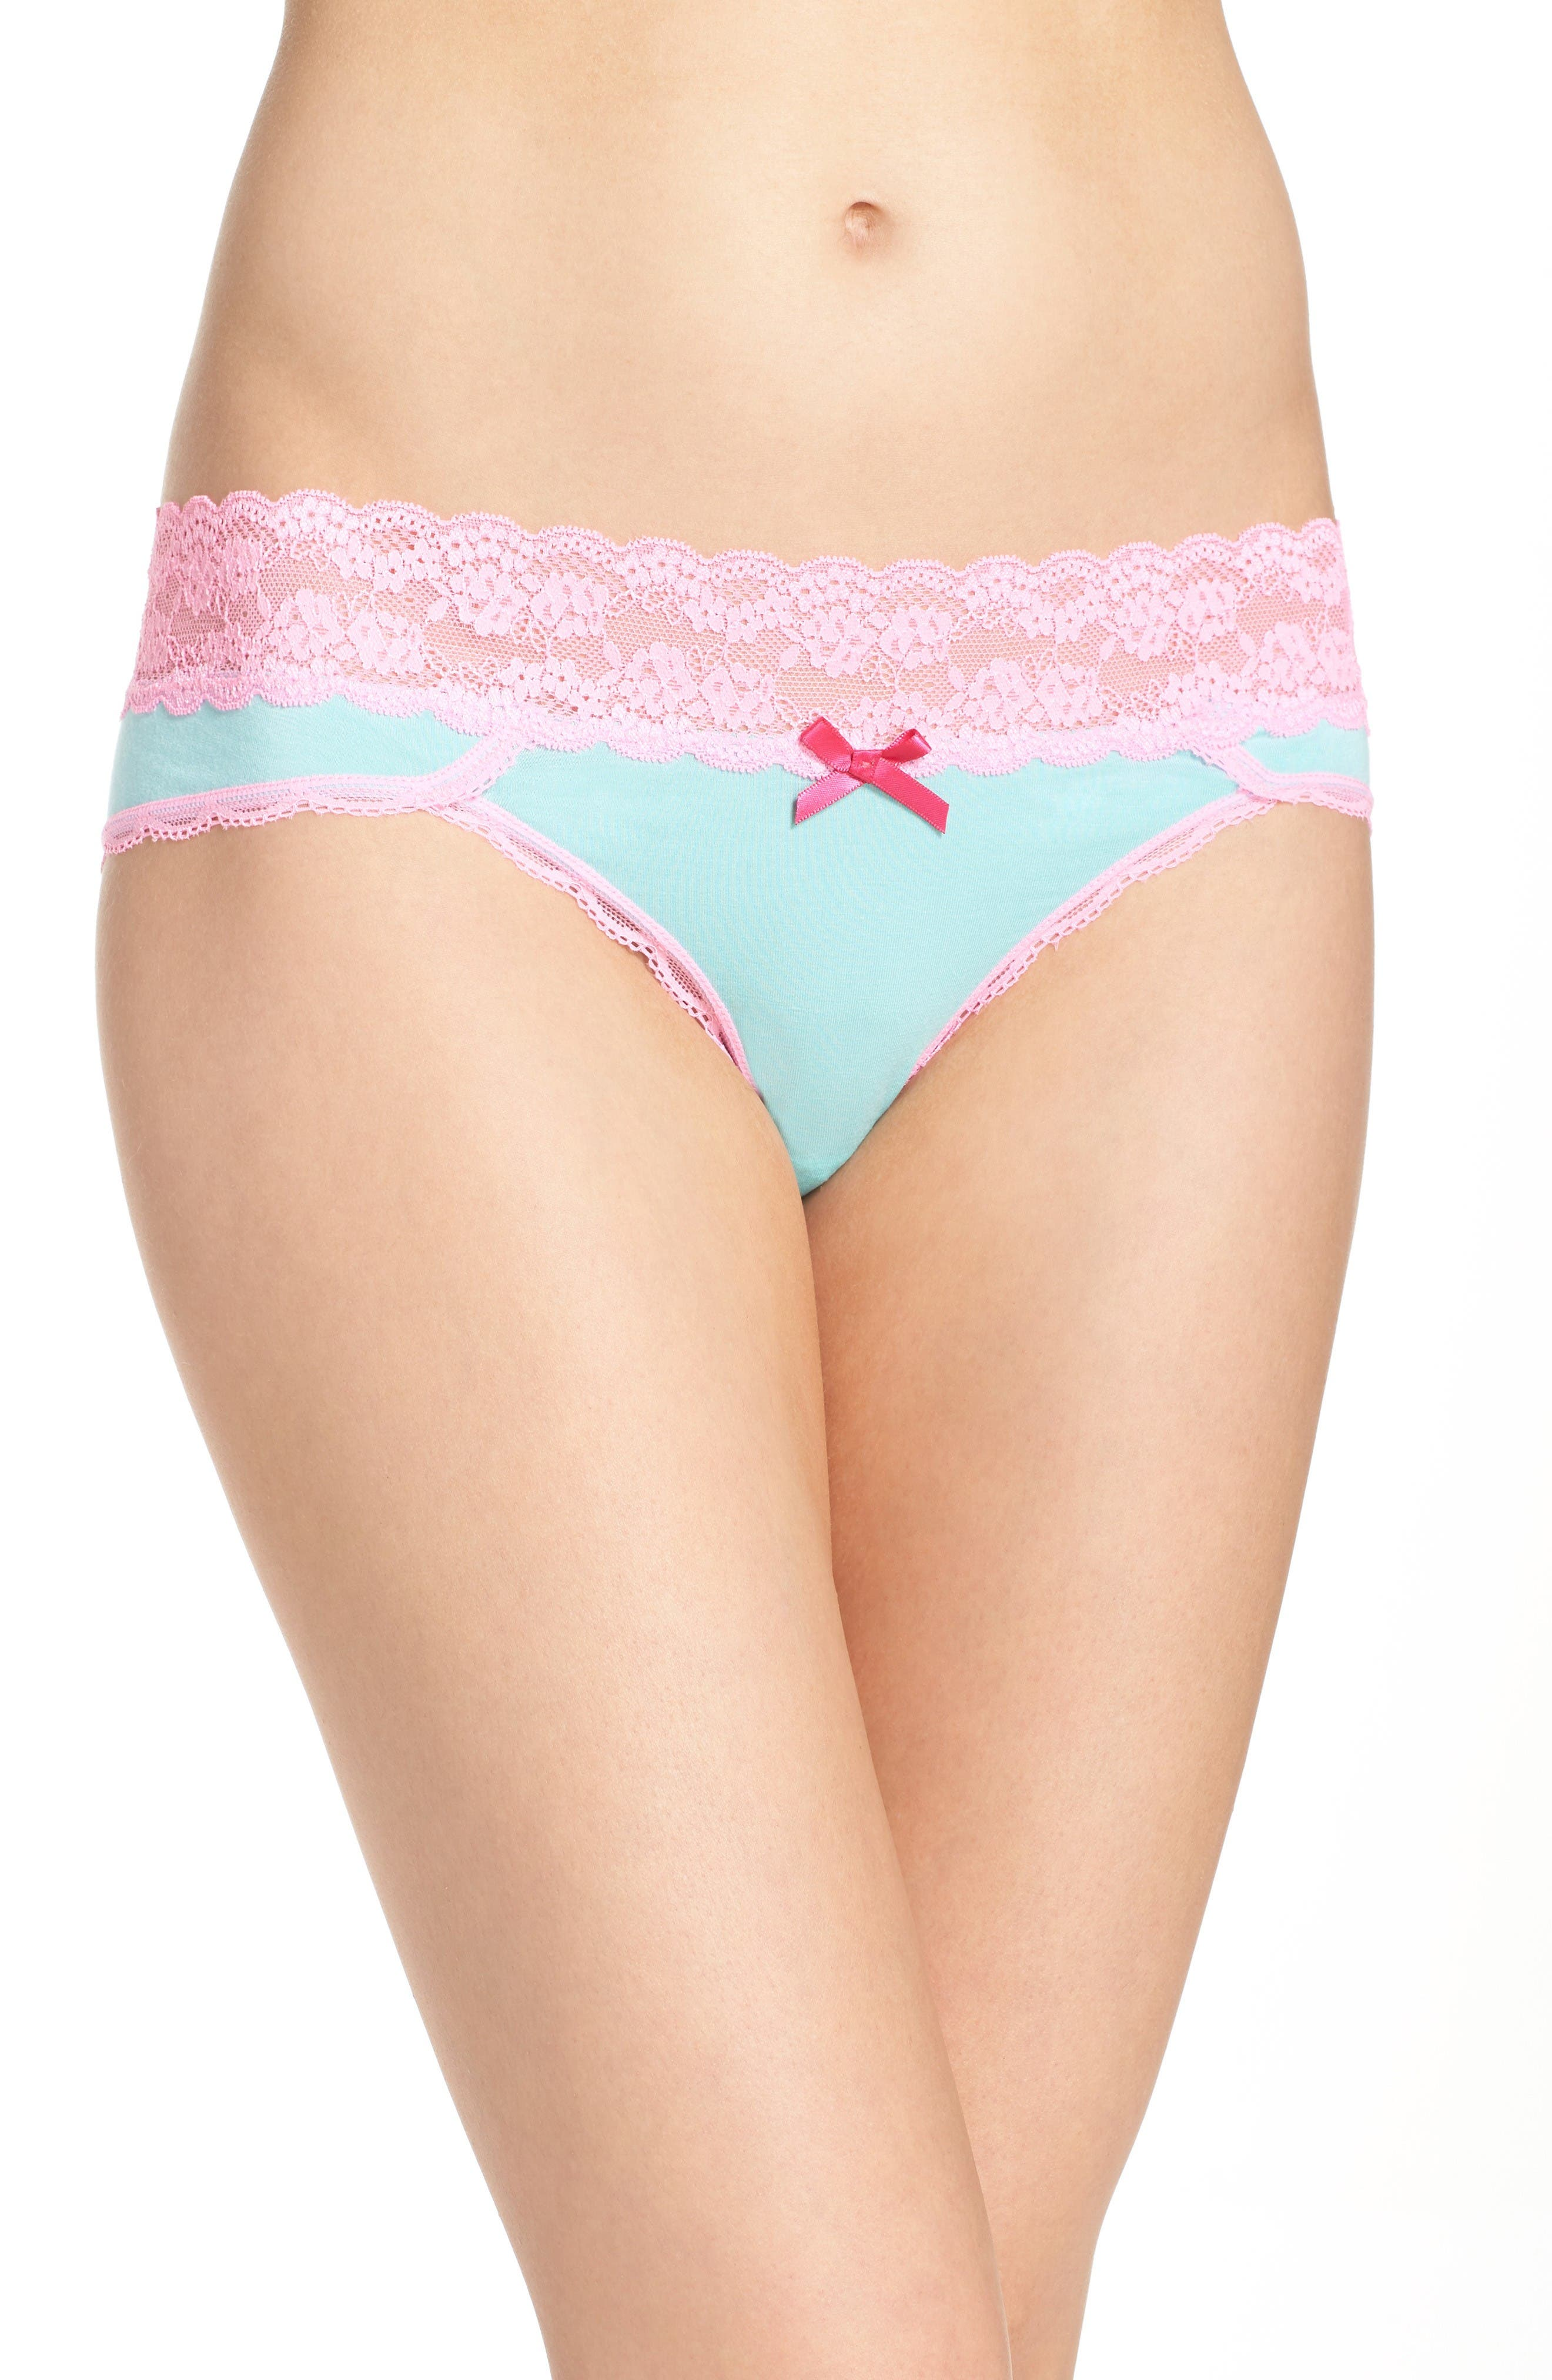 Honeydew Intimates Lace Waistband Hipster Panties